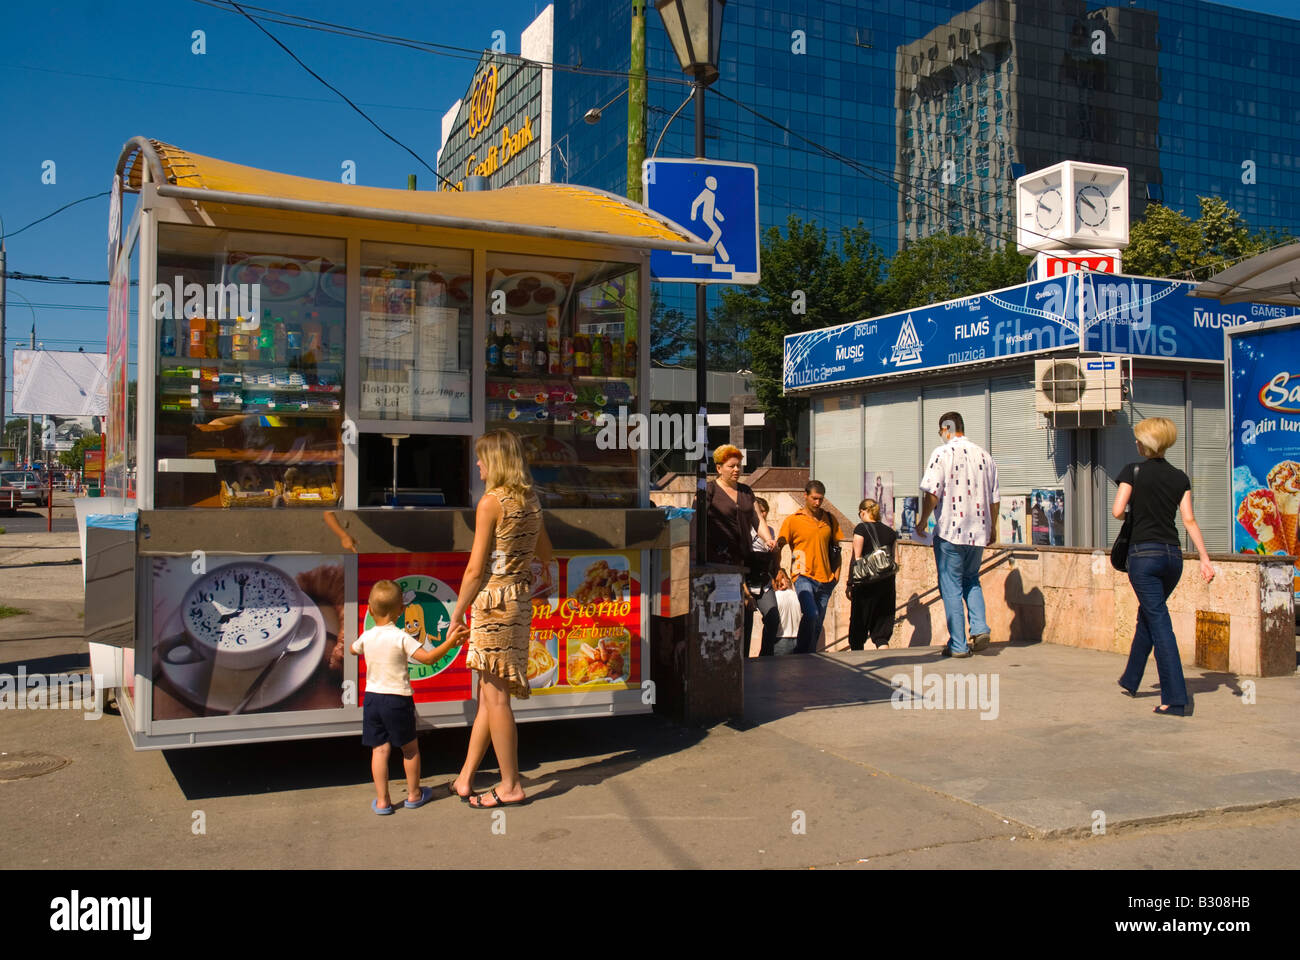 Kiosk selling snacks and drinks in central Chisinau Moldova Europe - Stock Image